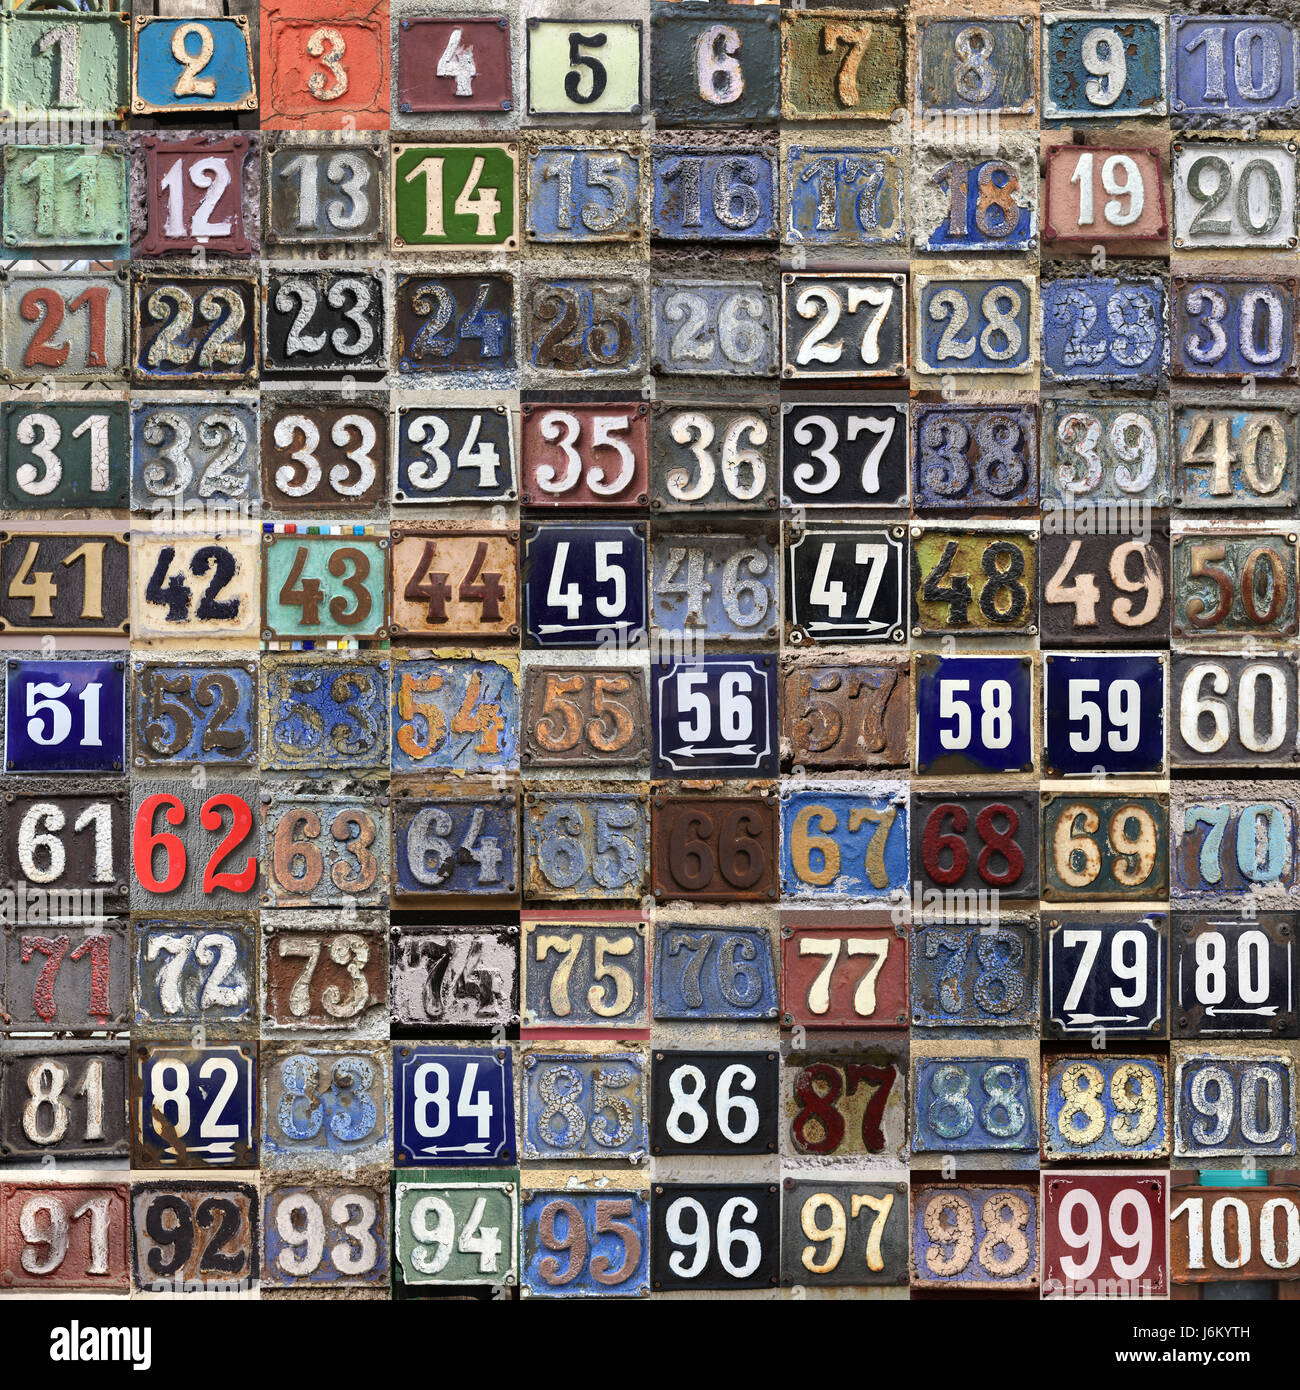 Vintage grunge square metal rusty plate of numbers of street address with numbers closeup, Consecutive street numbers - Stock Image